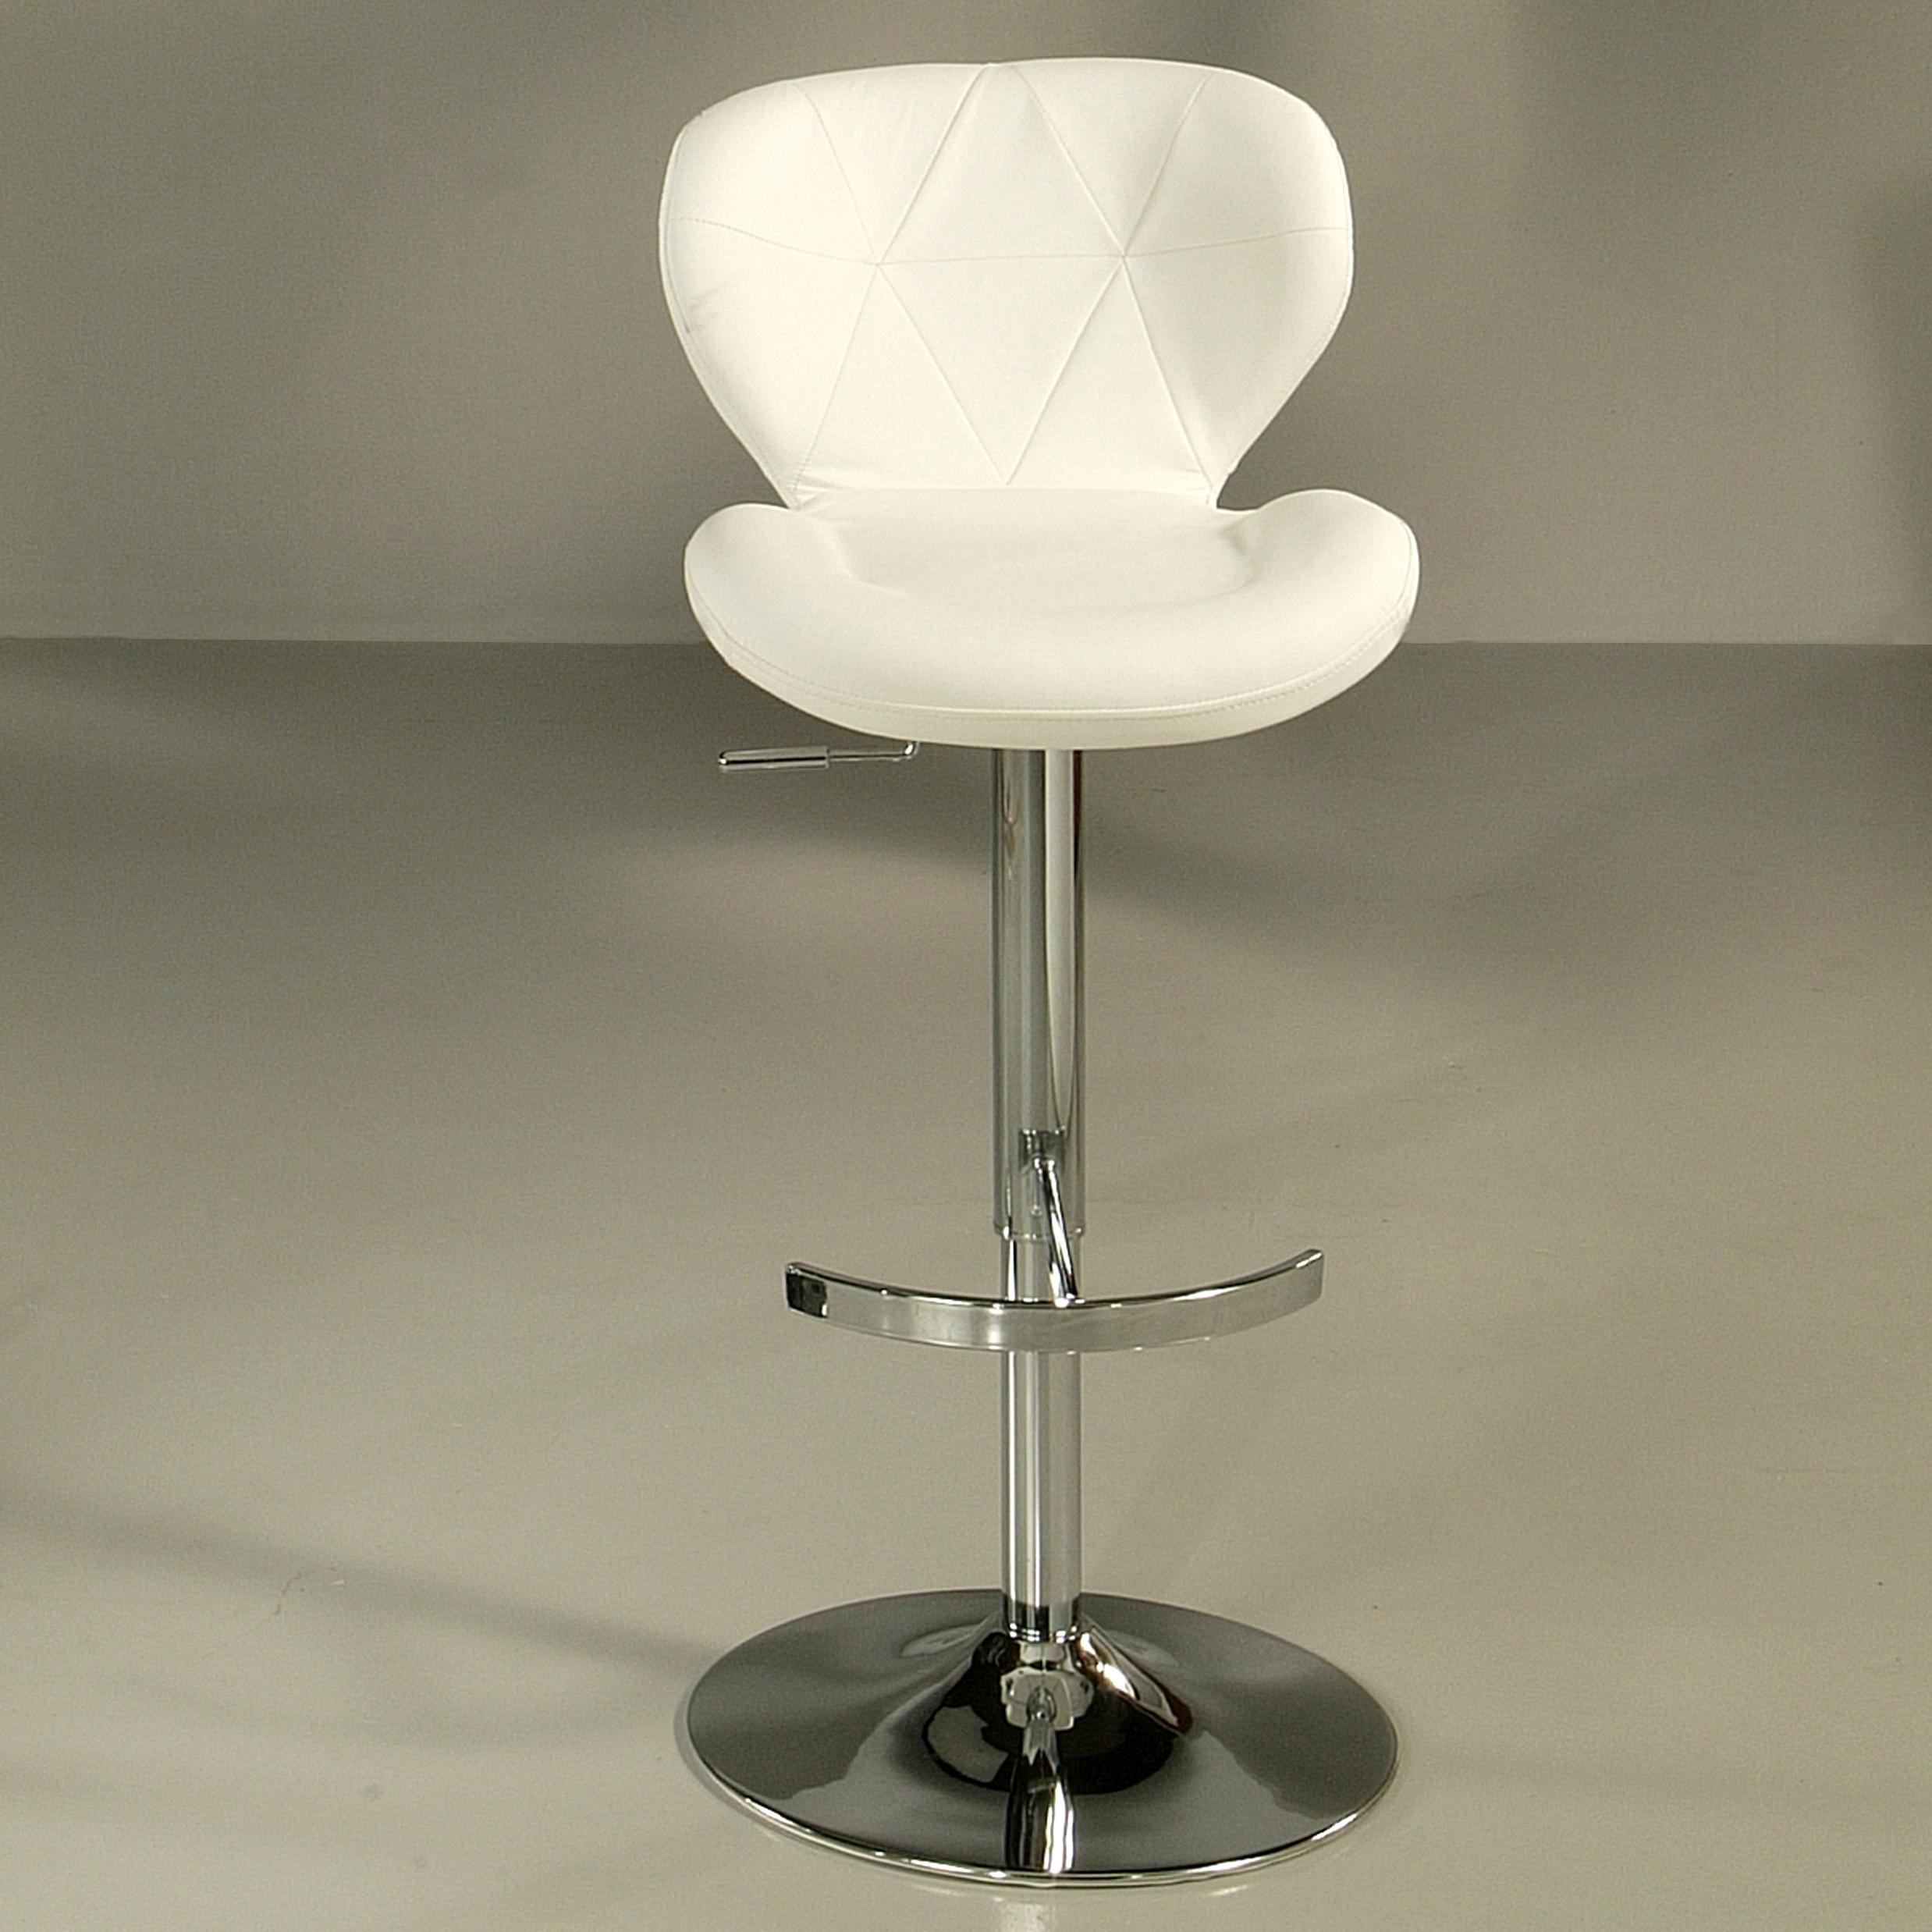 pastel minson contemporary barstools aegean coast  barstool  - contemporary barstools aegean coast  barstool with adjustable seatheight by pastel minson